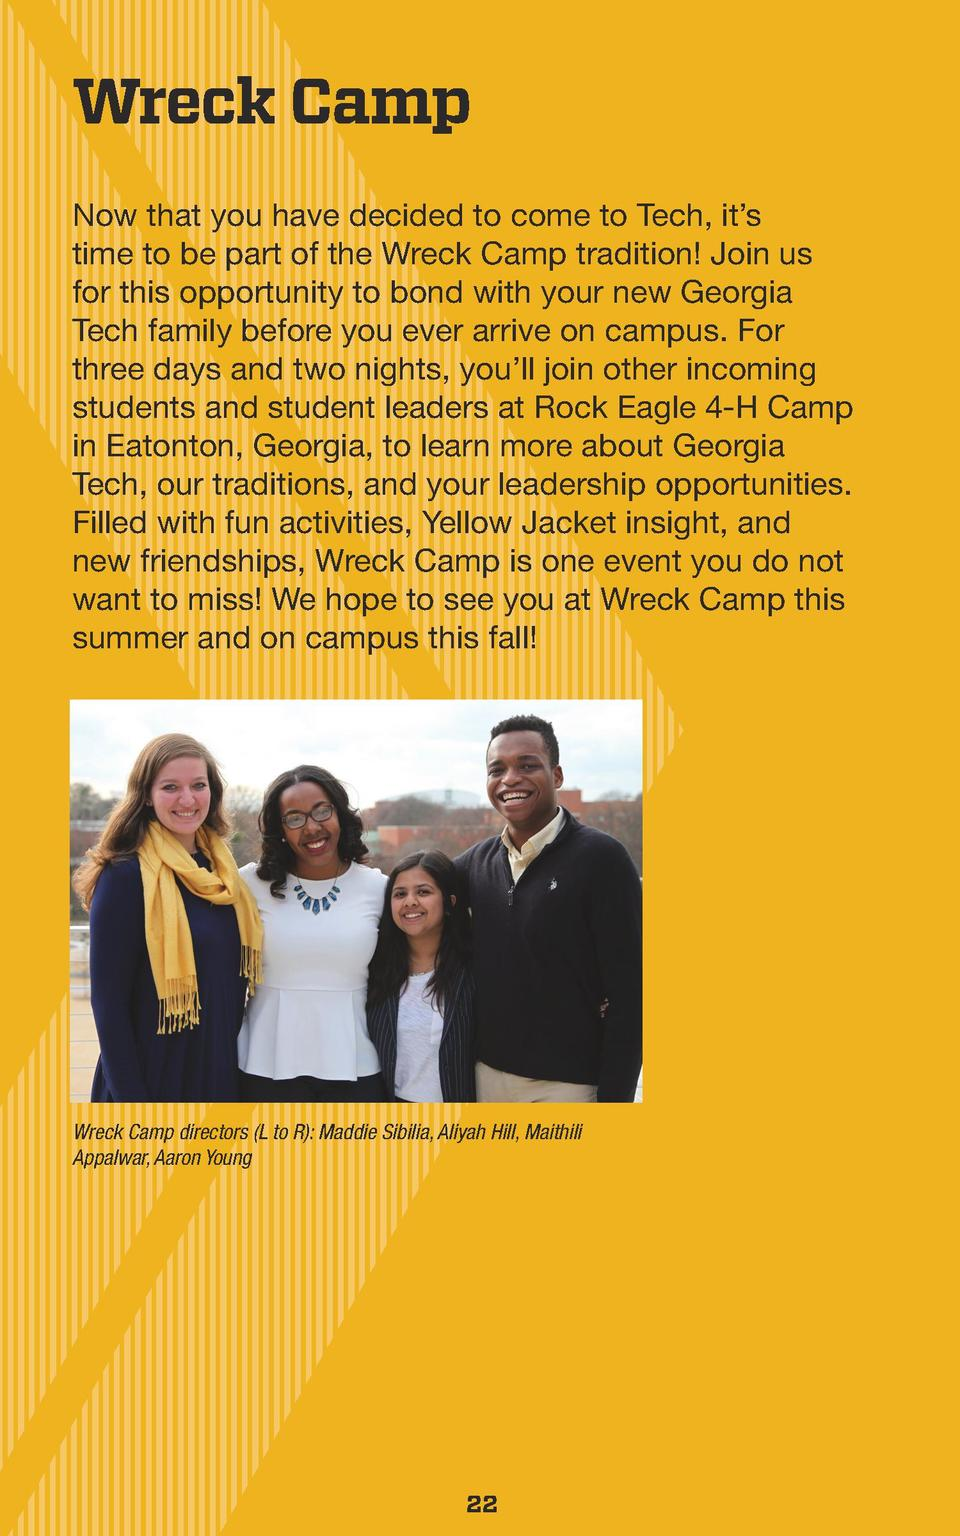 Wreck Camp Now that you have decided to come to Tech, it   s time to be part of the Wreck Camp tradition  Join us for this...